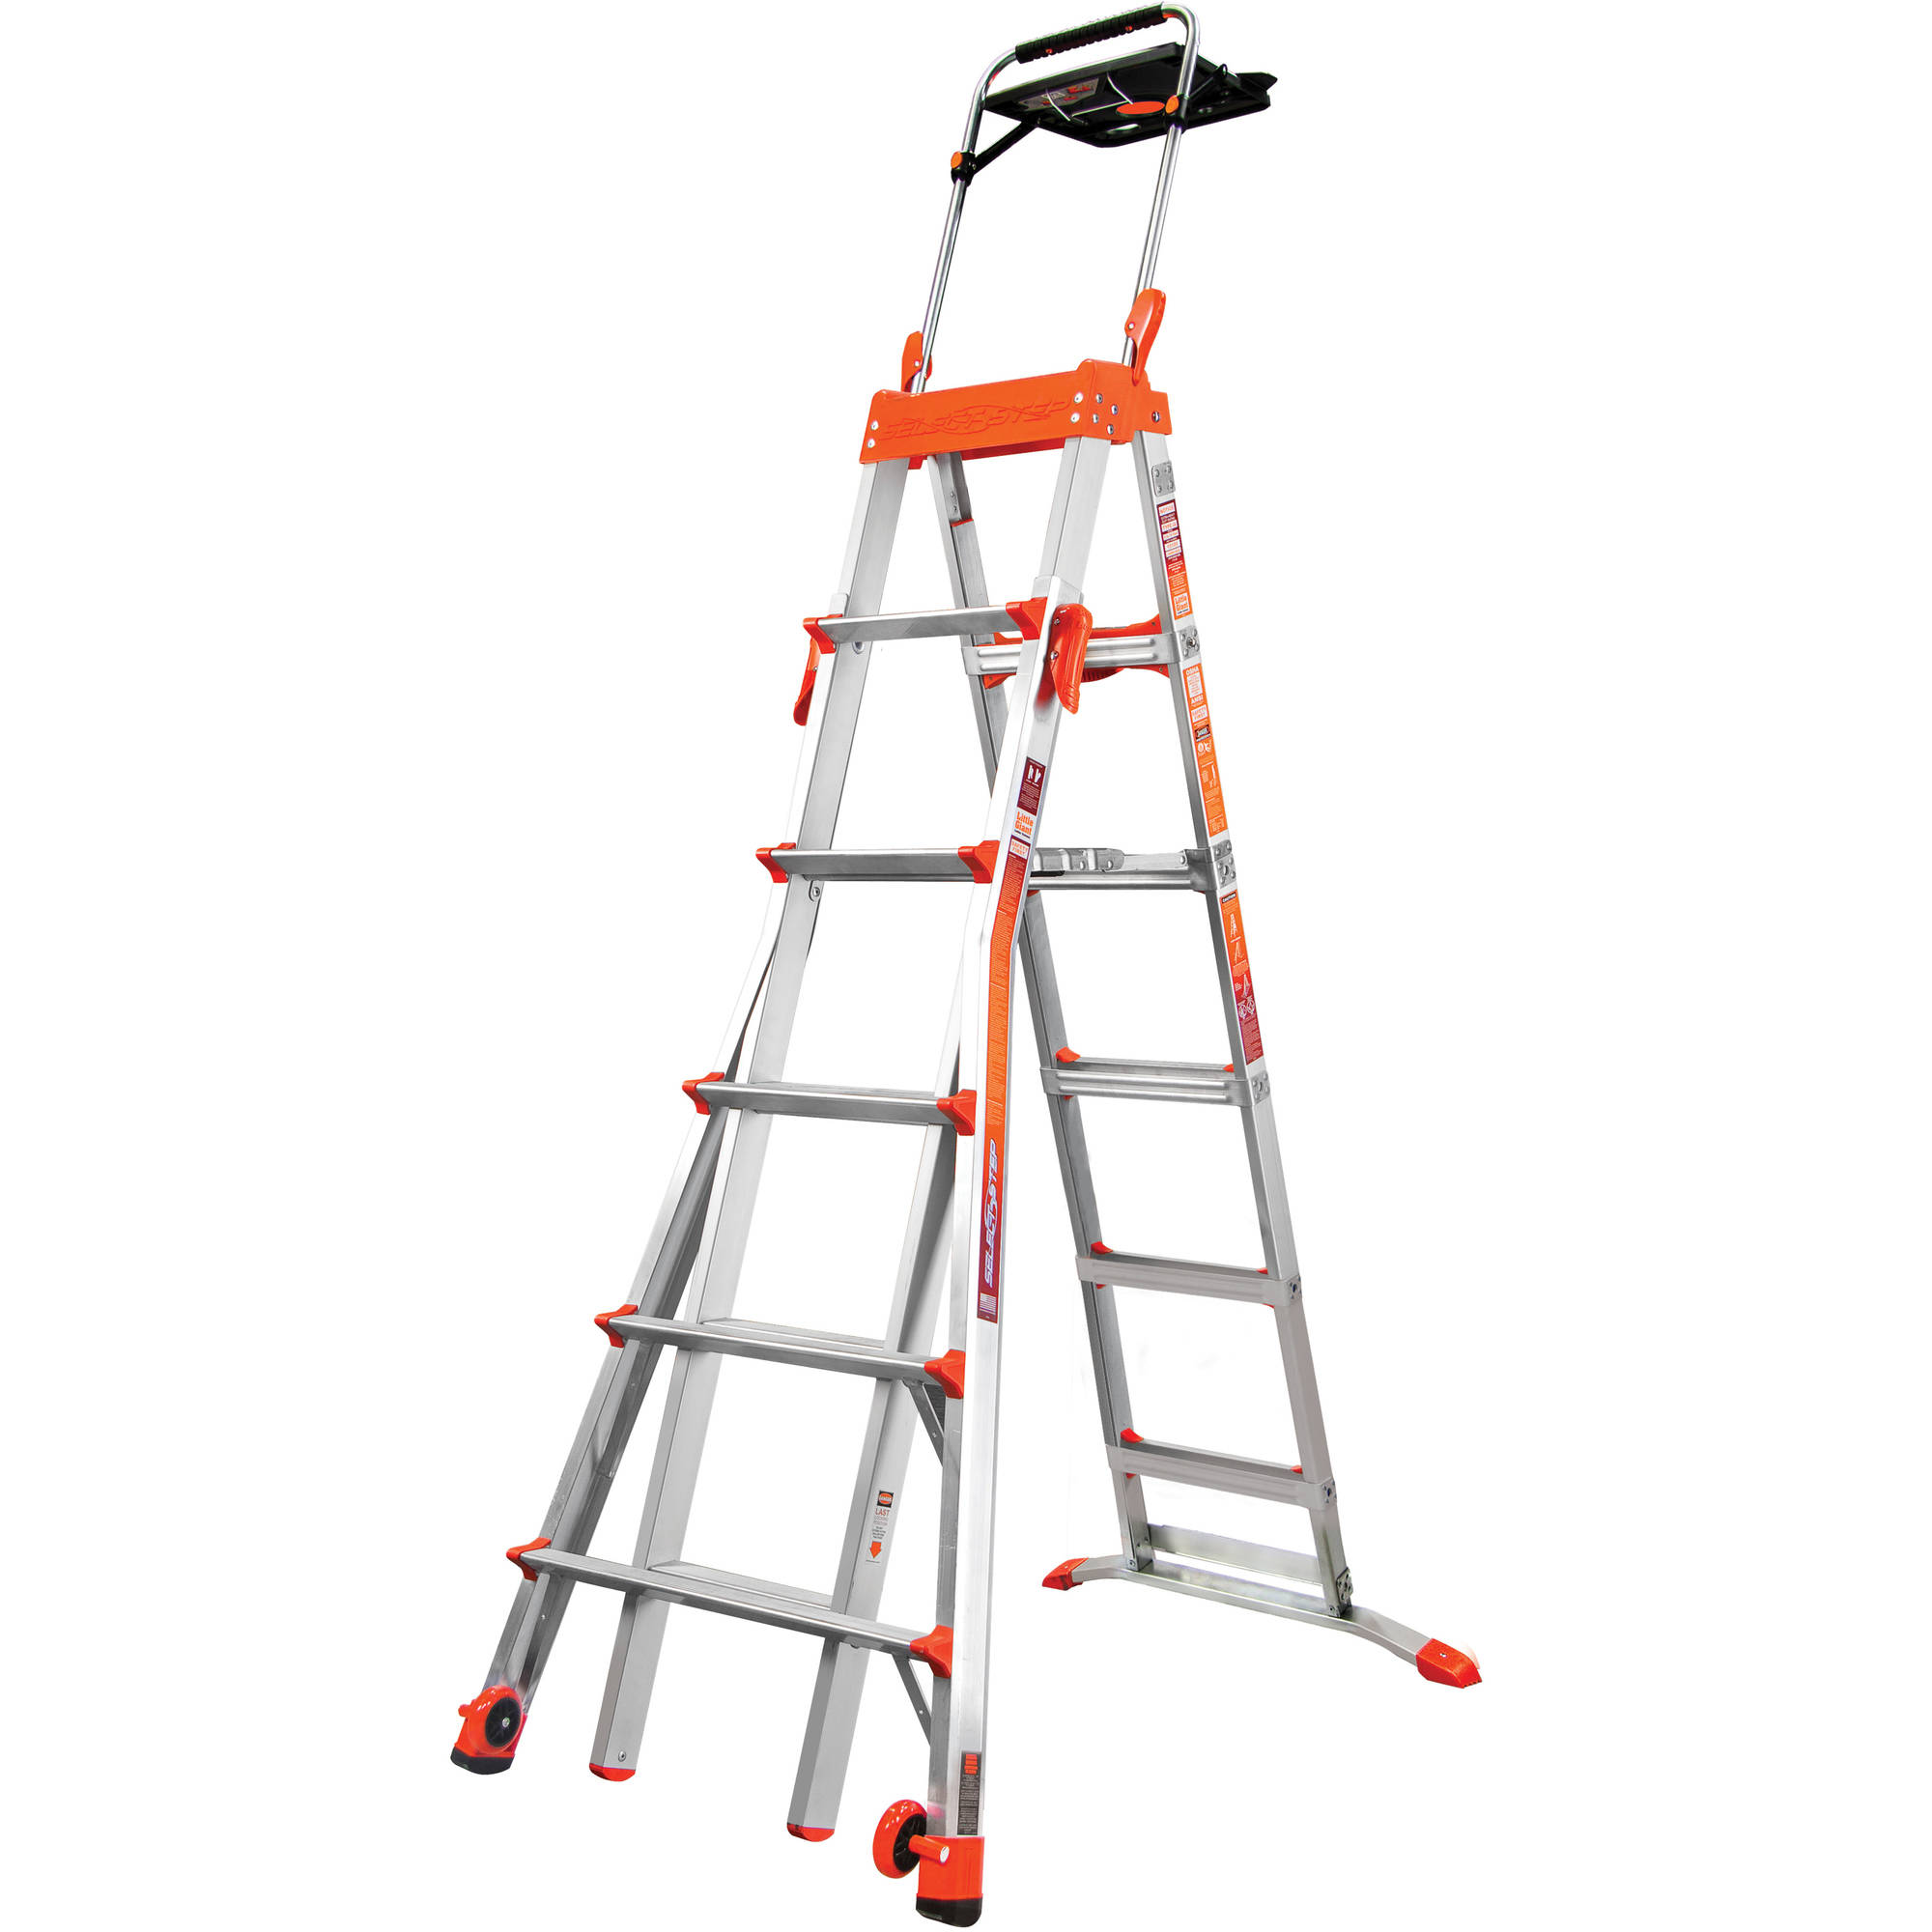 Little Giant Ladder Systems Select Step 6'-10' Adjustable Step Ladder